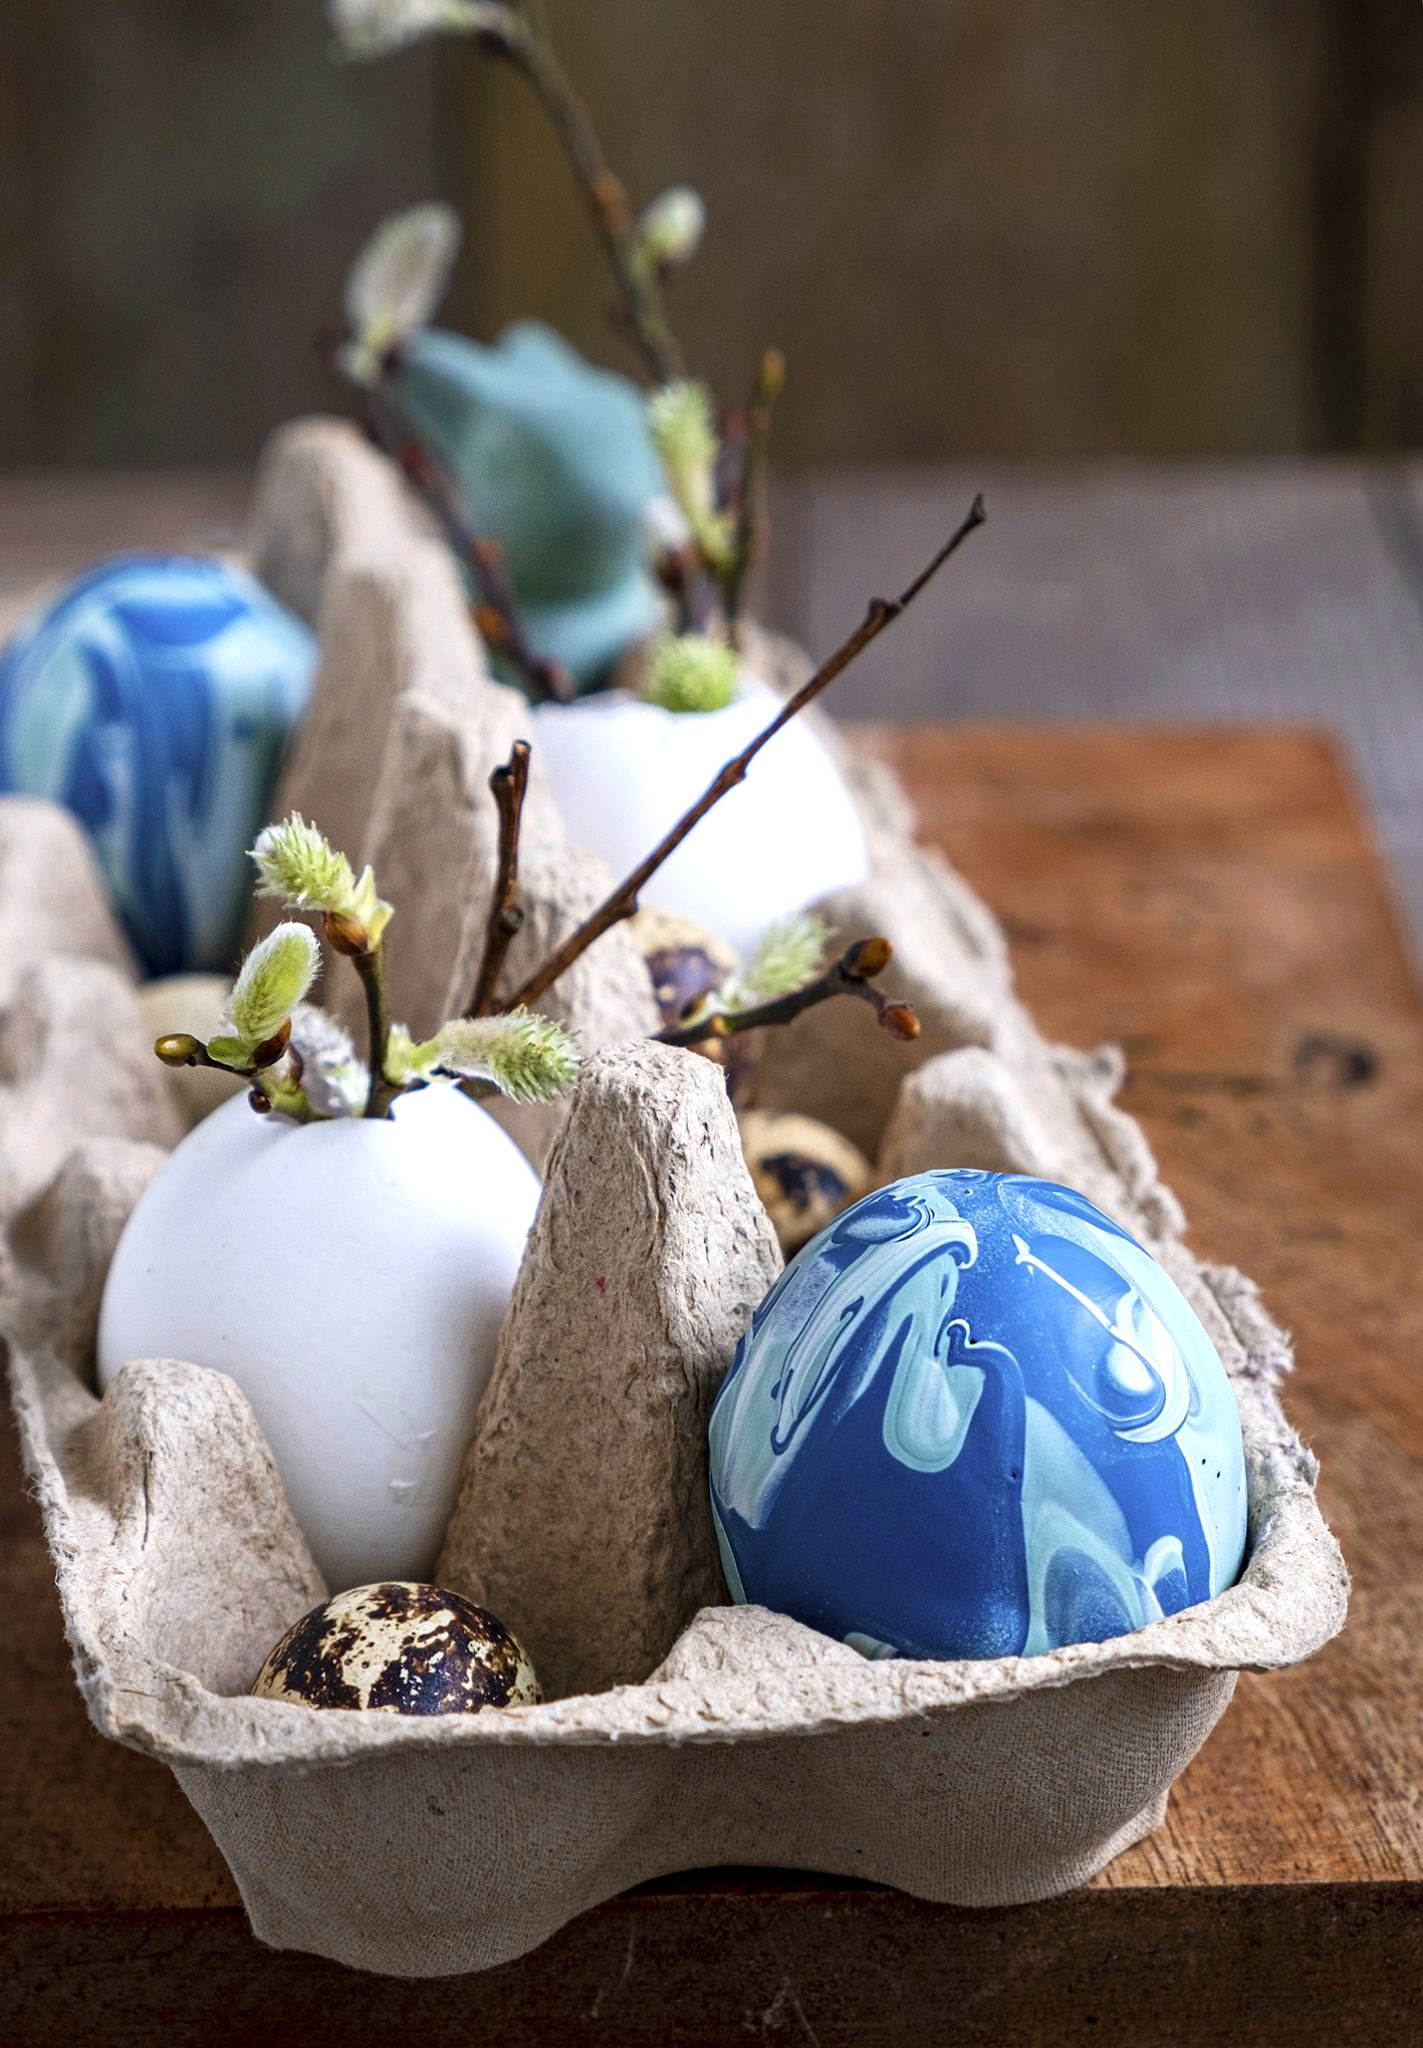 Paint dipped Easter eggs by Elsa R Blog, featured on DIY Salvaged Junk Projects 513 on Funky Junk!